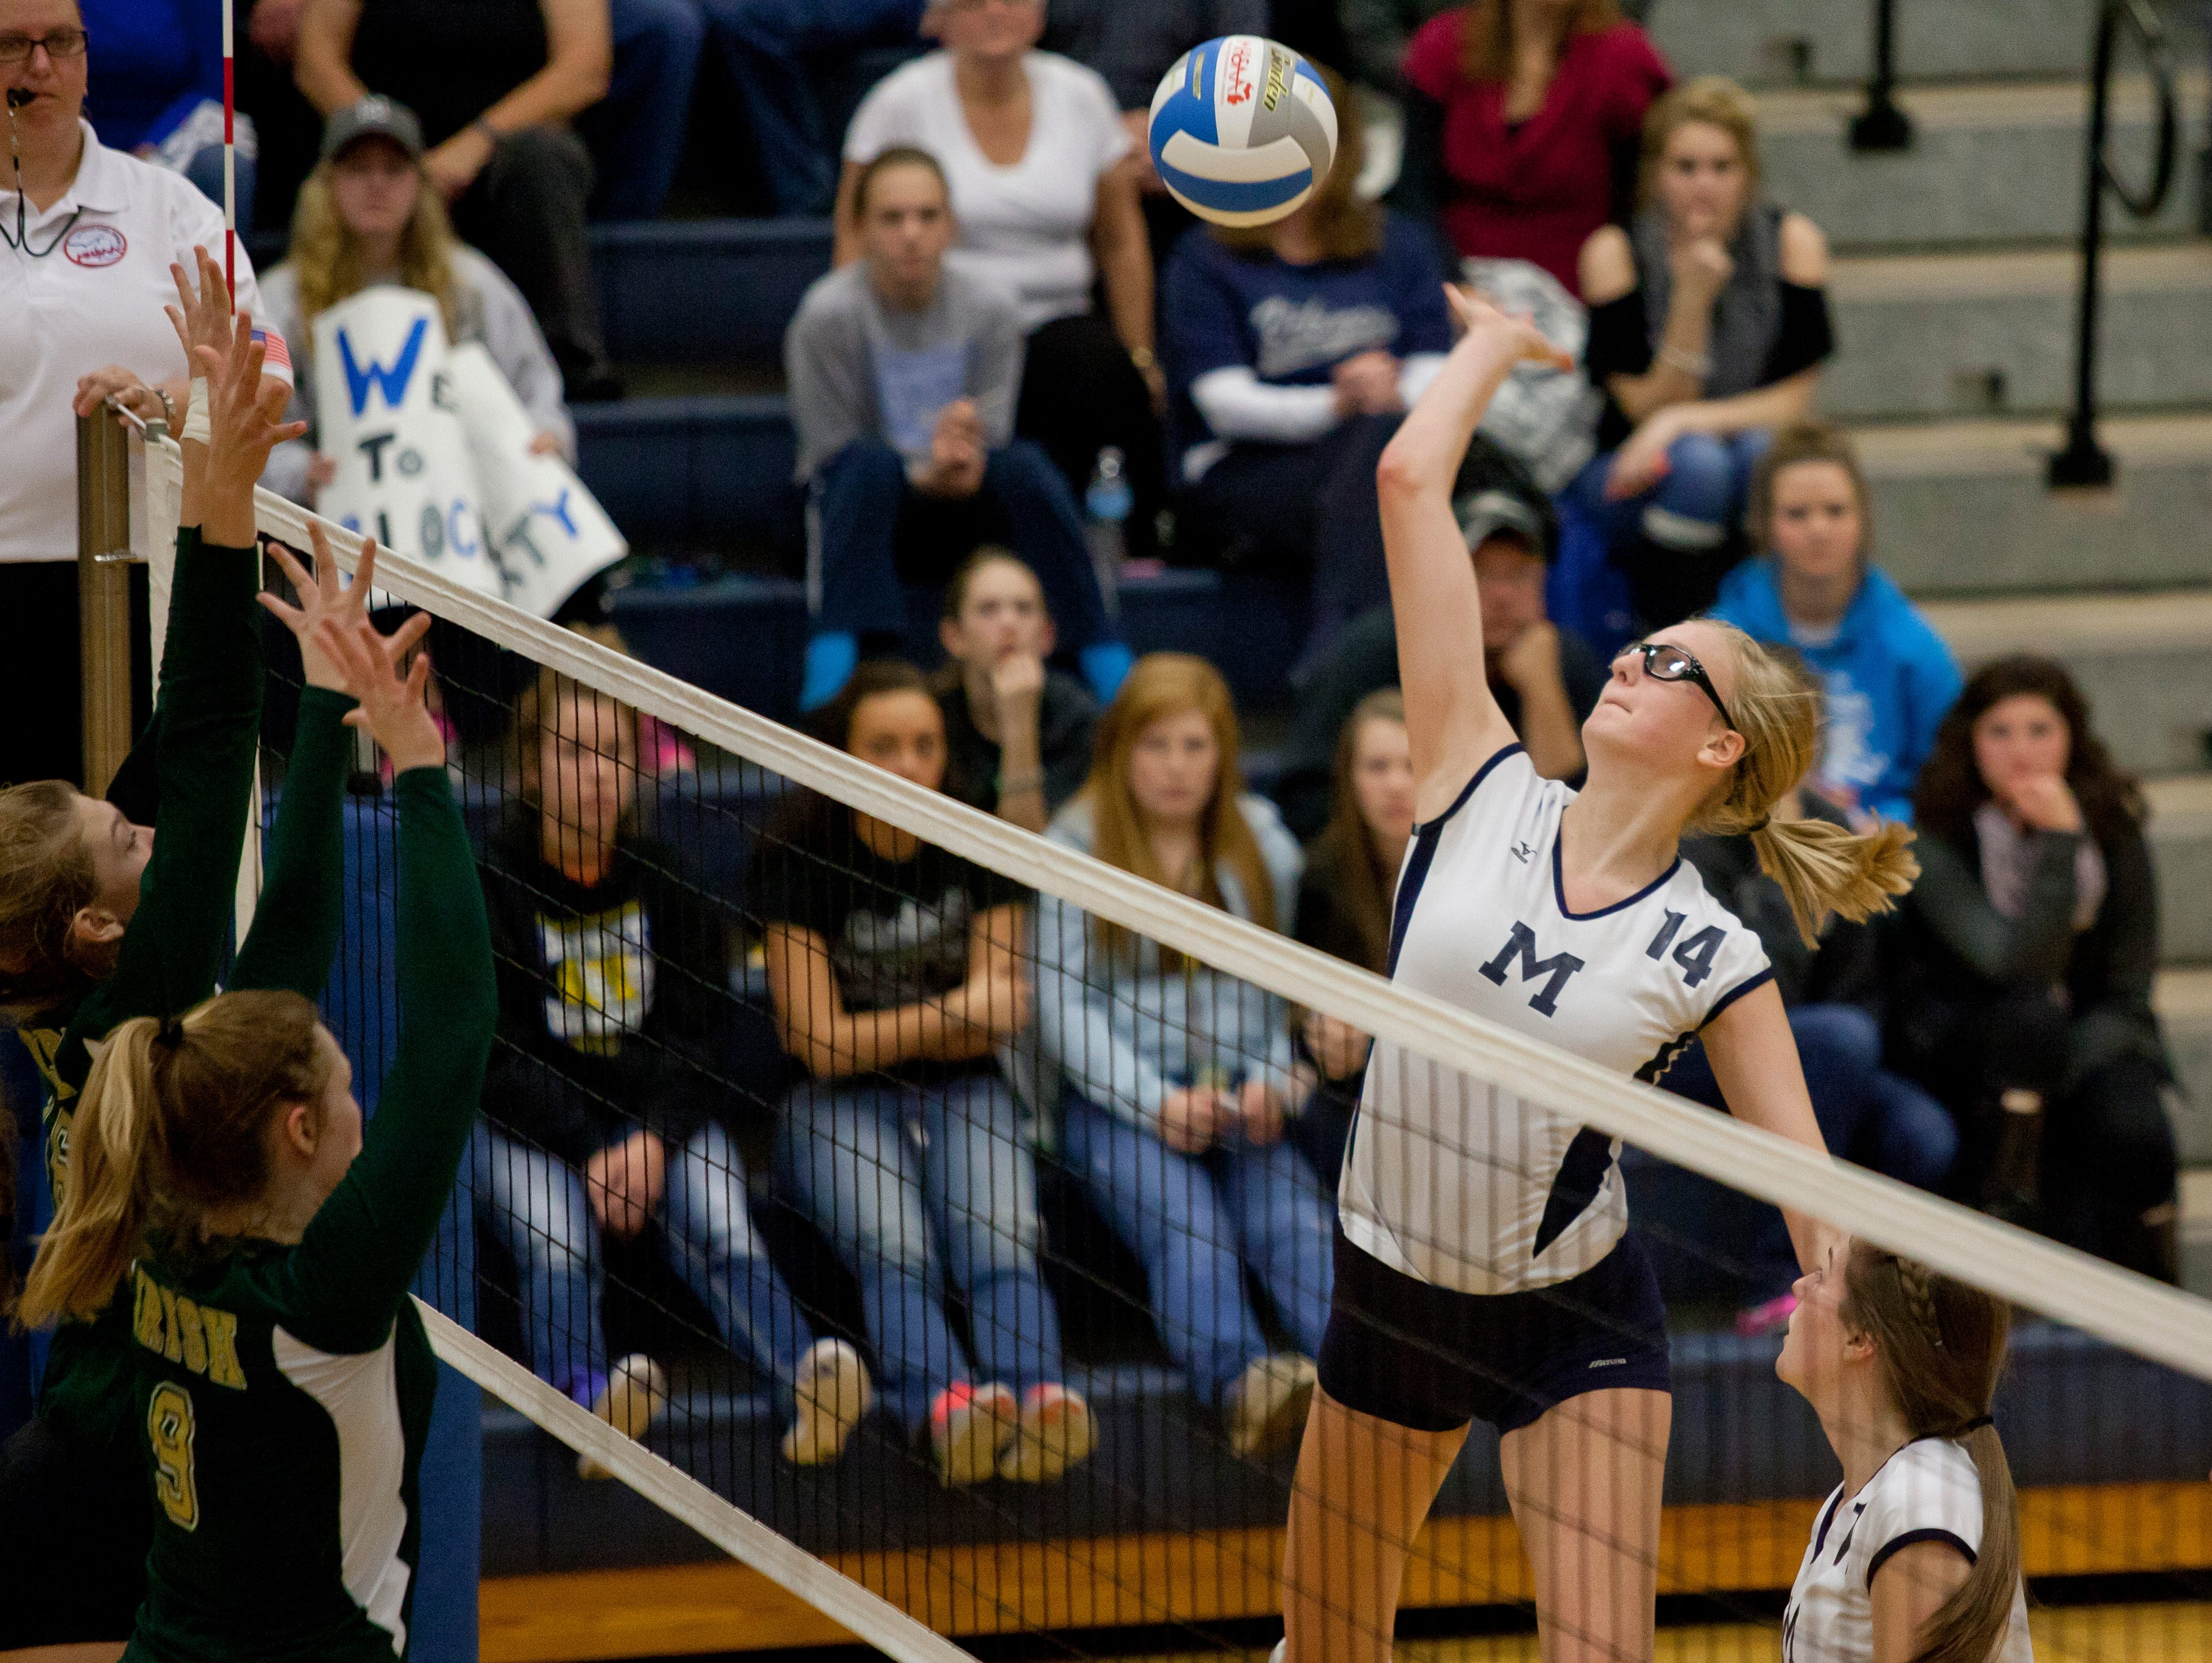 Marysville junior Payton Husson spikes the ball during a regional semifinal volleyball game Tuesday, November 10, 2015 at Imlay City High School.